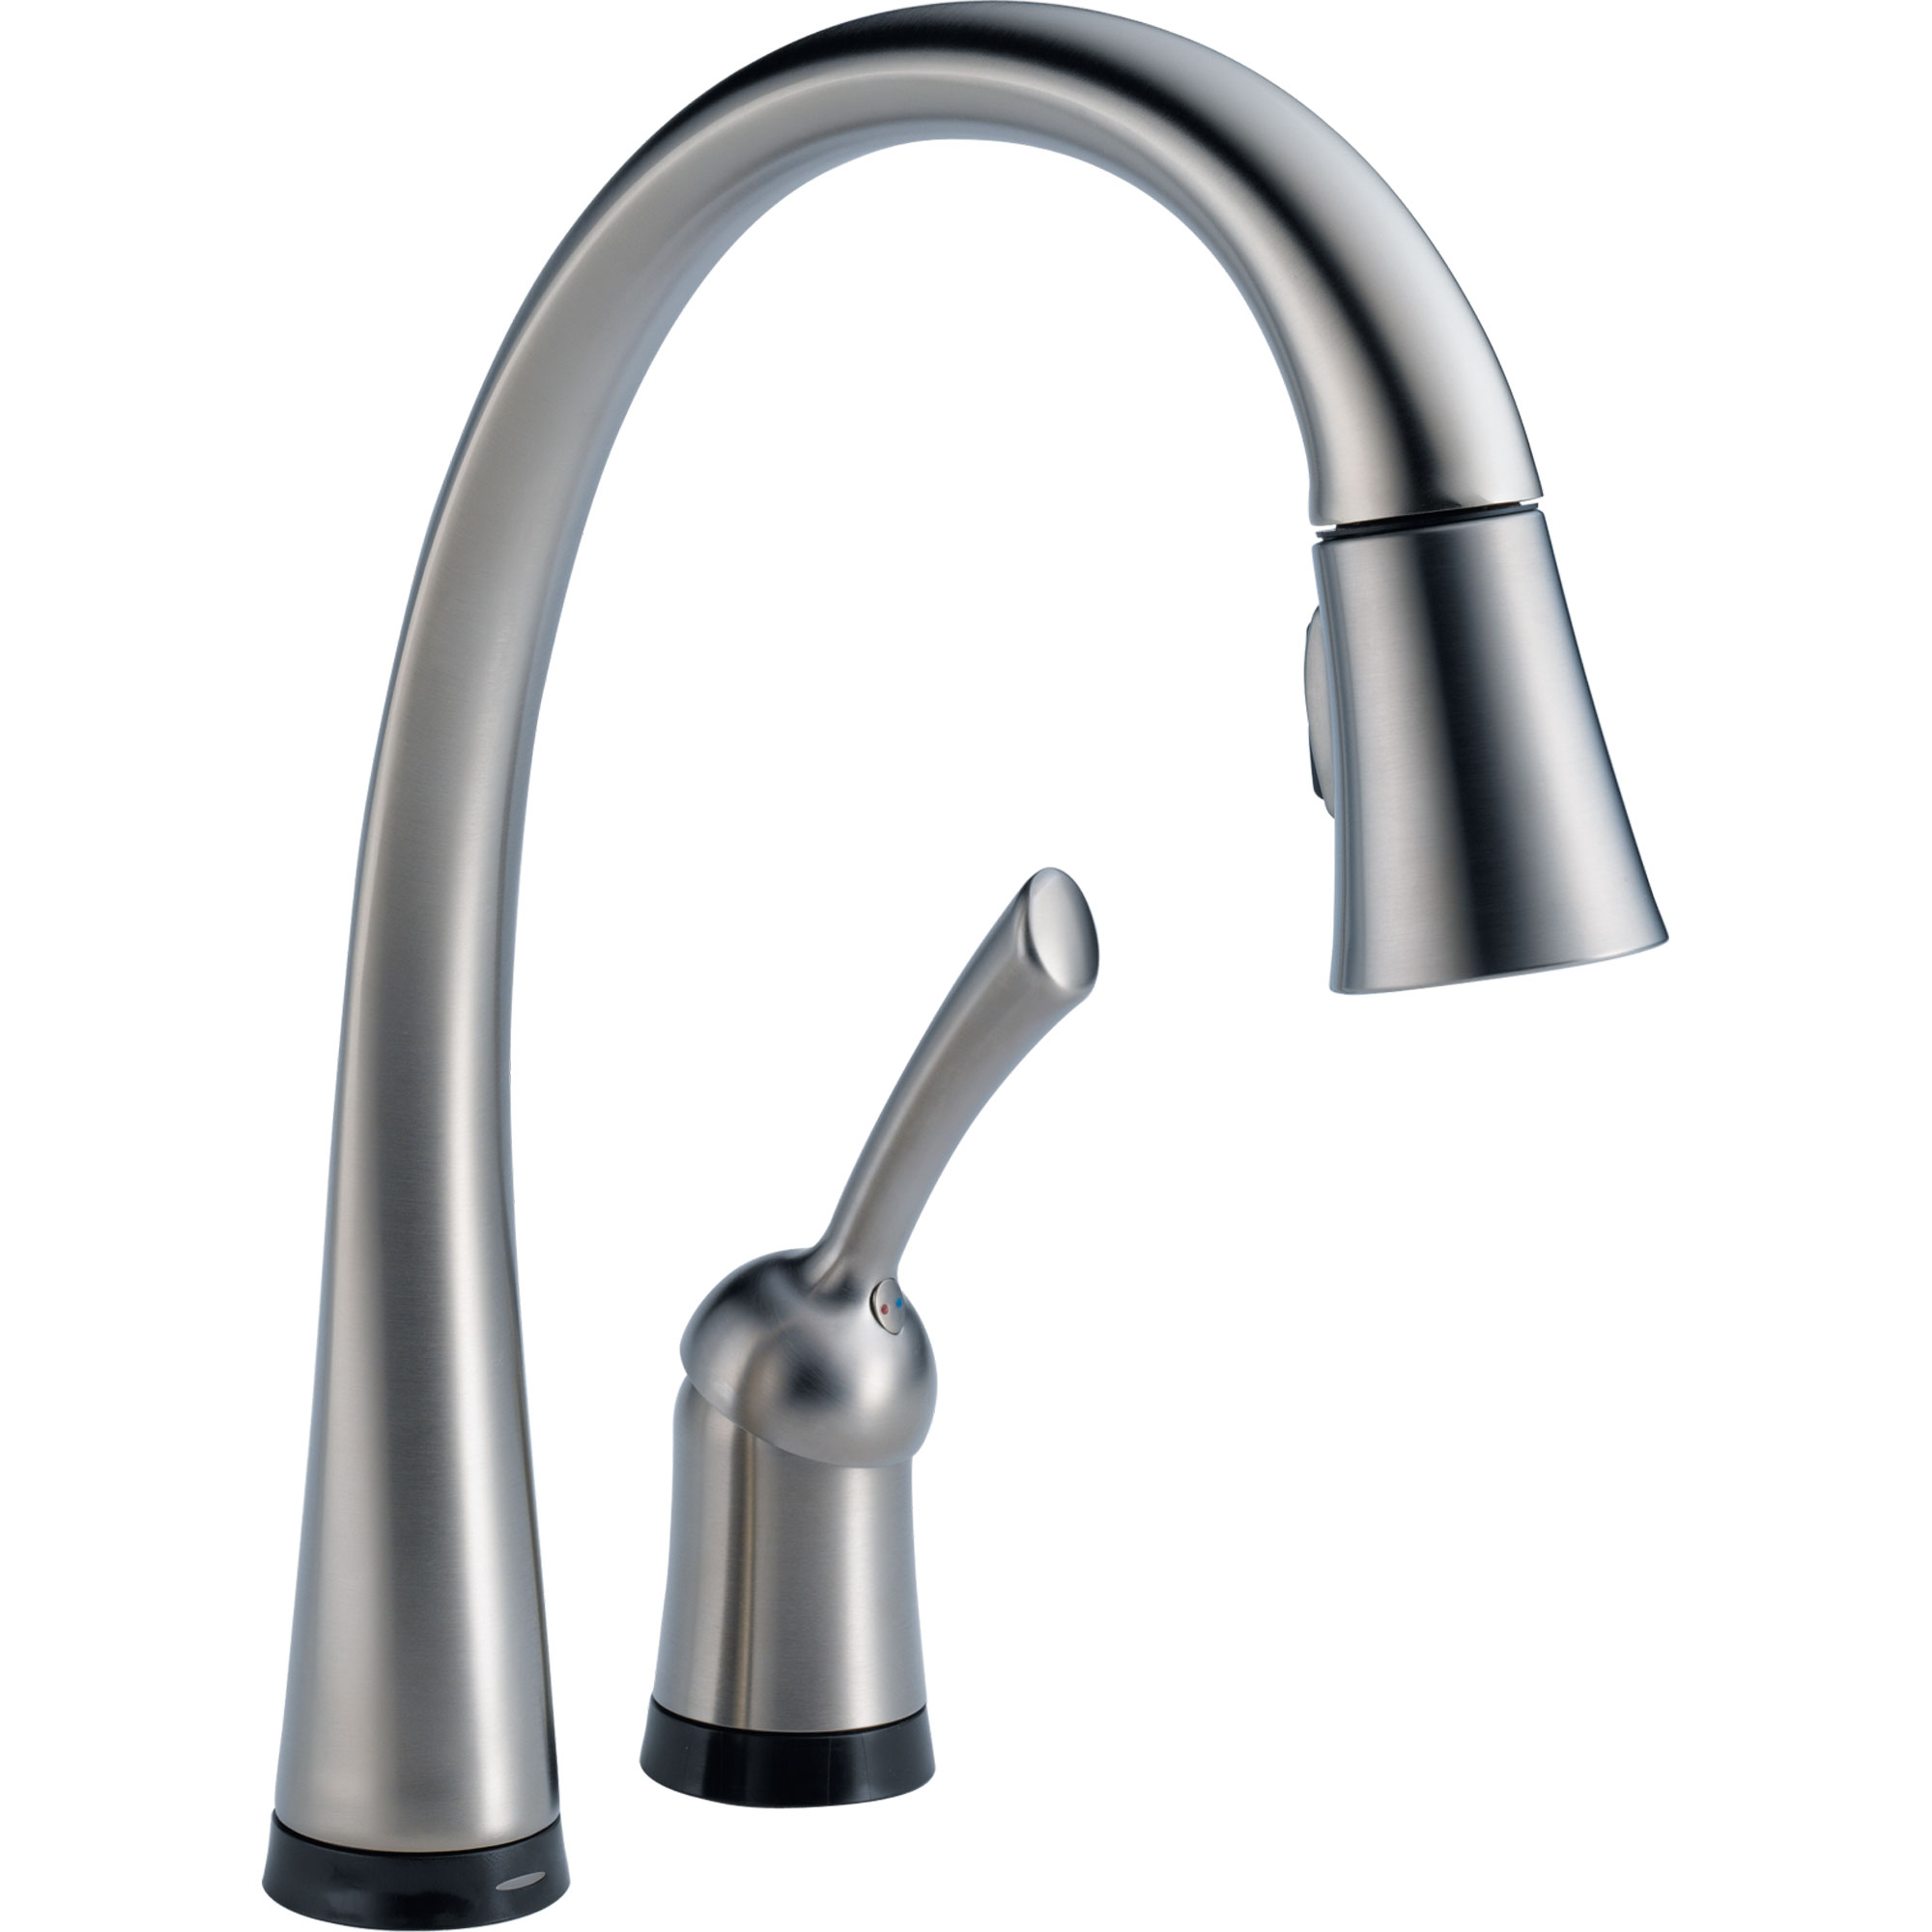 Exciting Delta Cassidy Kitchen Faucet for Kitchen Faucet Ideas: Cool Delta Cassidy Kitchen Faucet For Kitchen Faucet Ideas With Delta Single Handle Kitchen Faucet With Spray